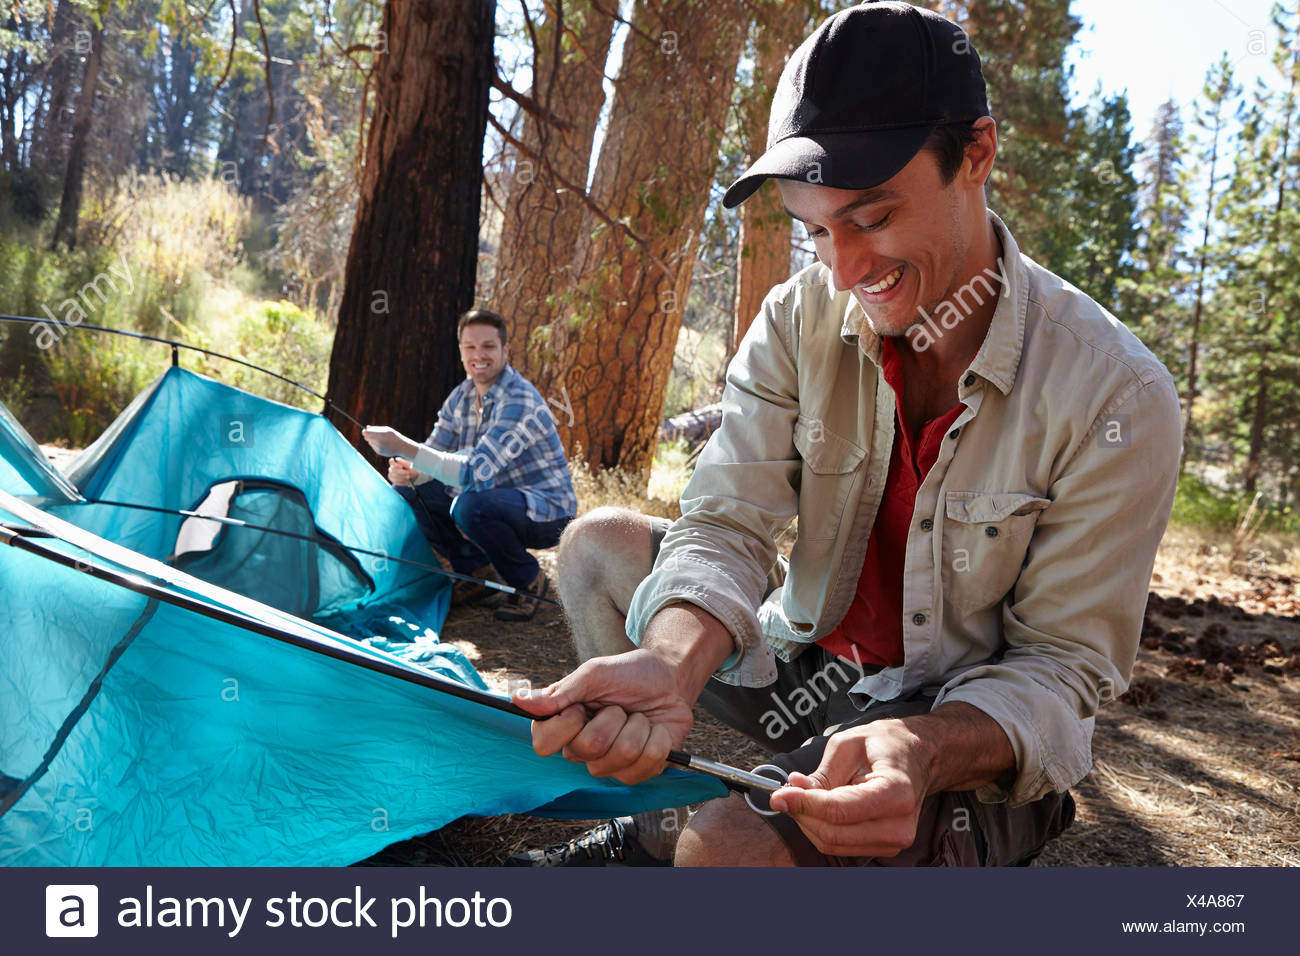 Two young male campers putting up tent in forest, Los Angeles, California, USA - Stock Image